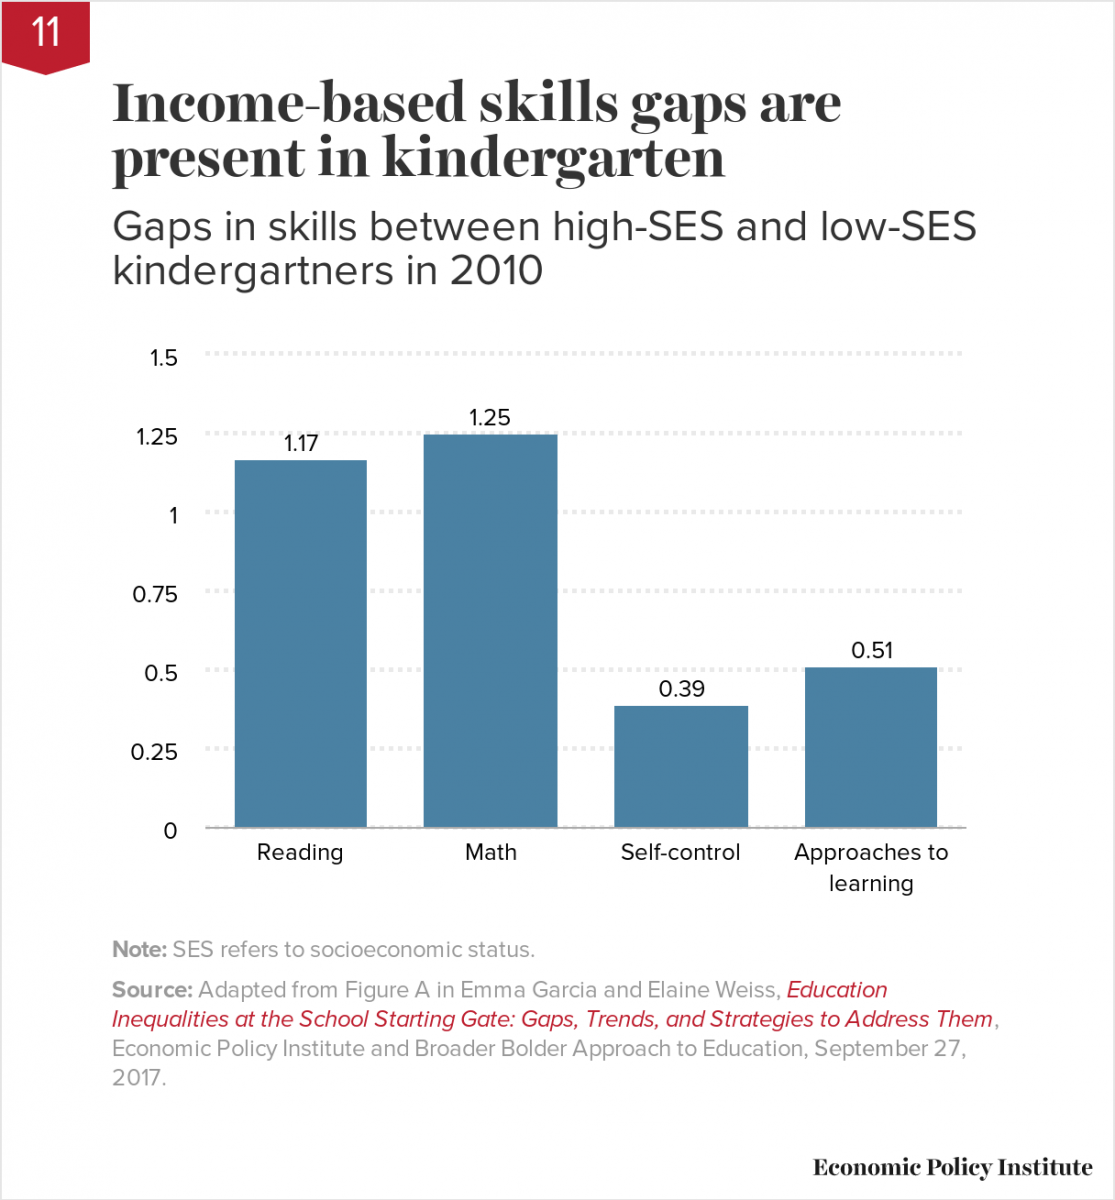 Income-based skills gaps are present in kindergarten